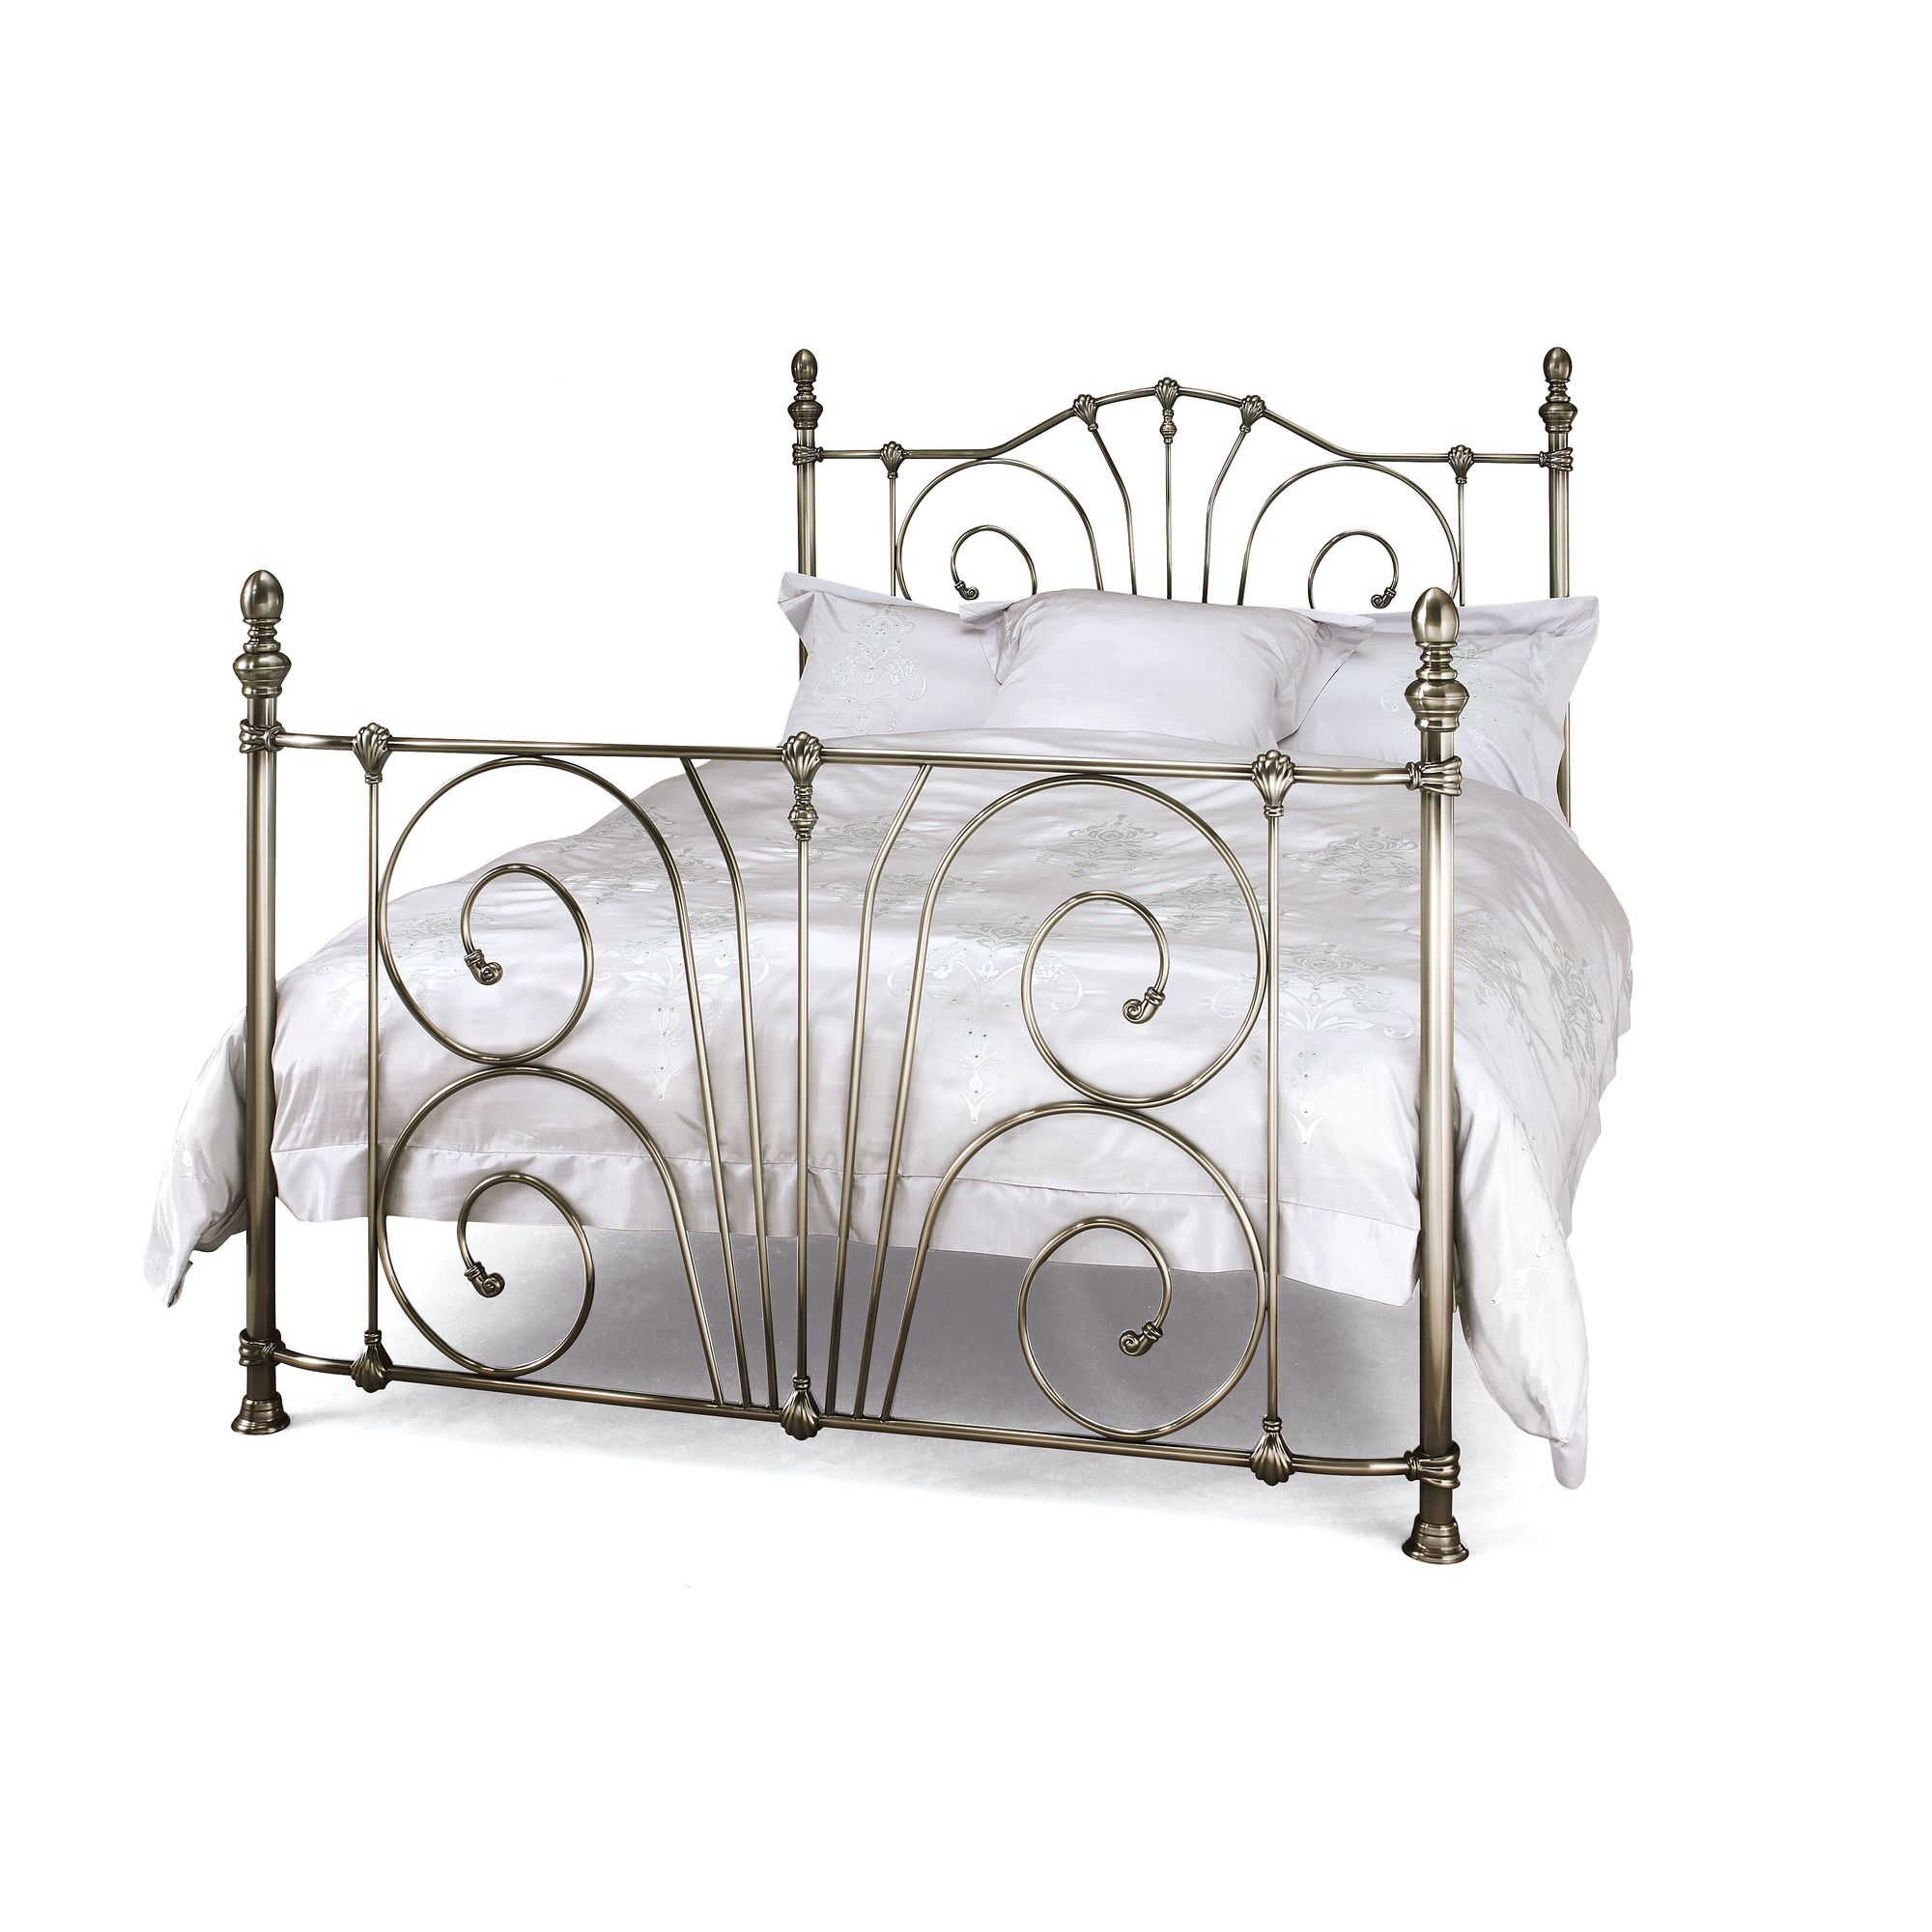 Serene Furnishings Jessica Bed Frame - King - Antique Nickel at Tesco Direct